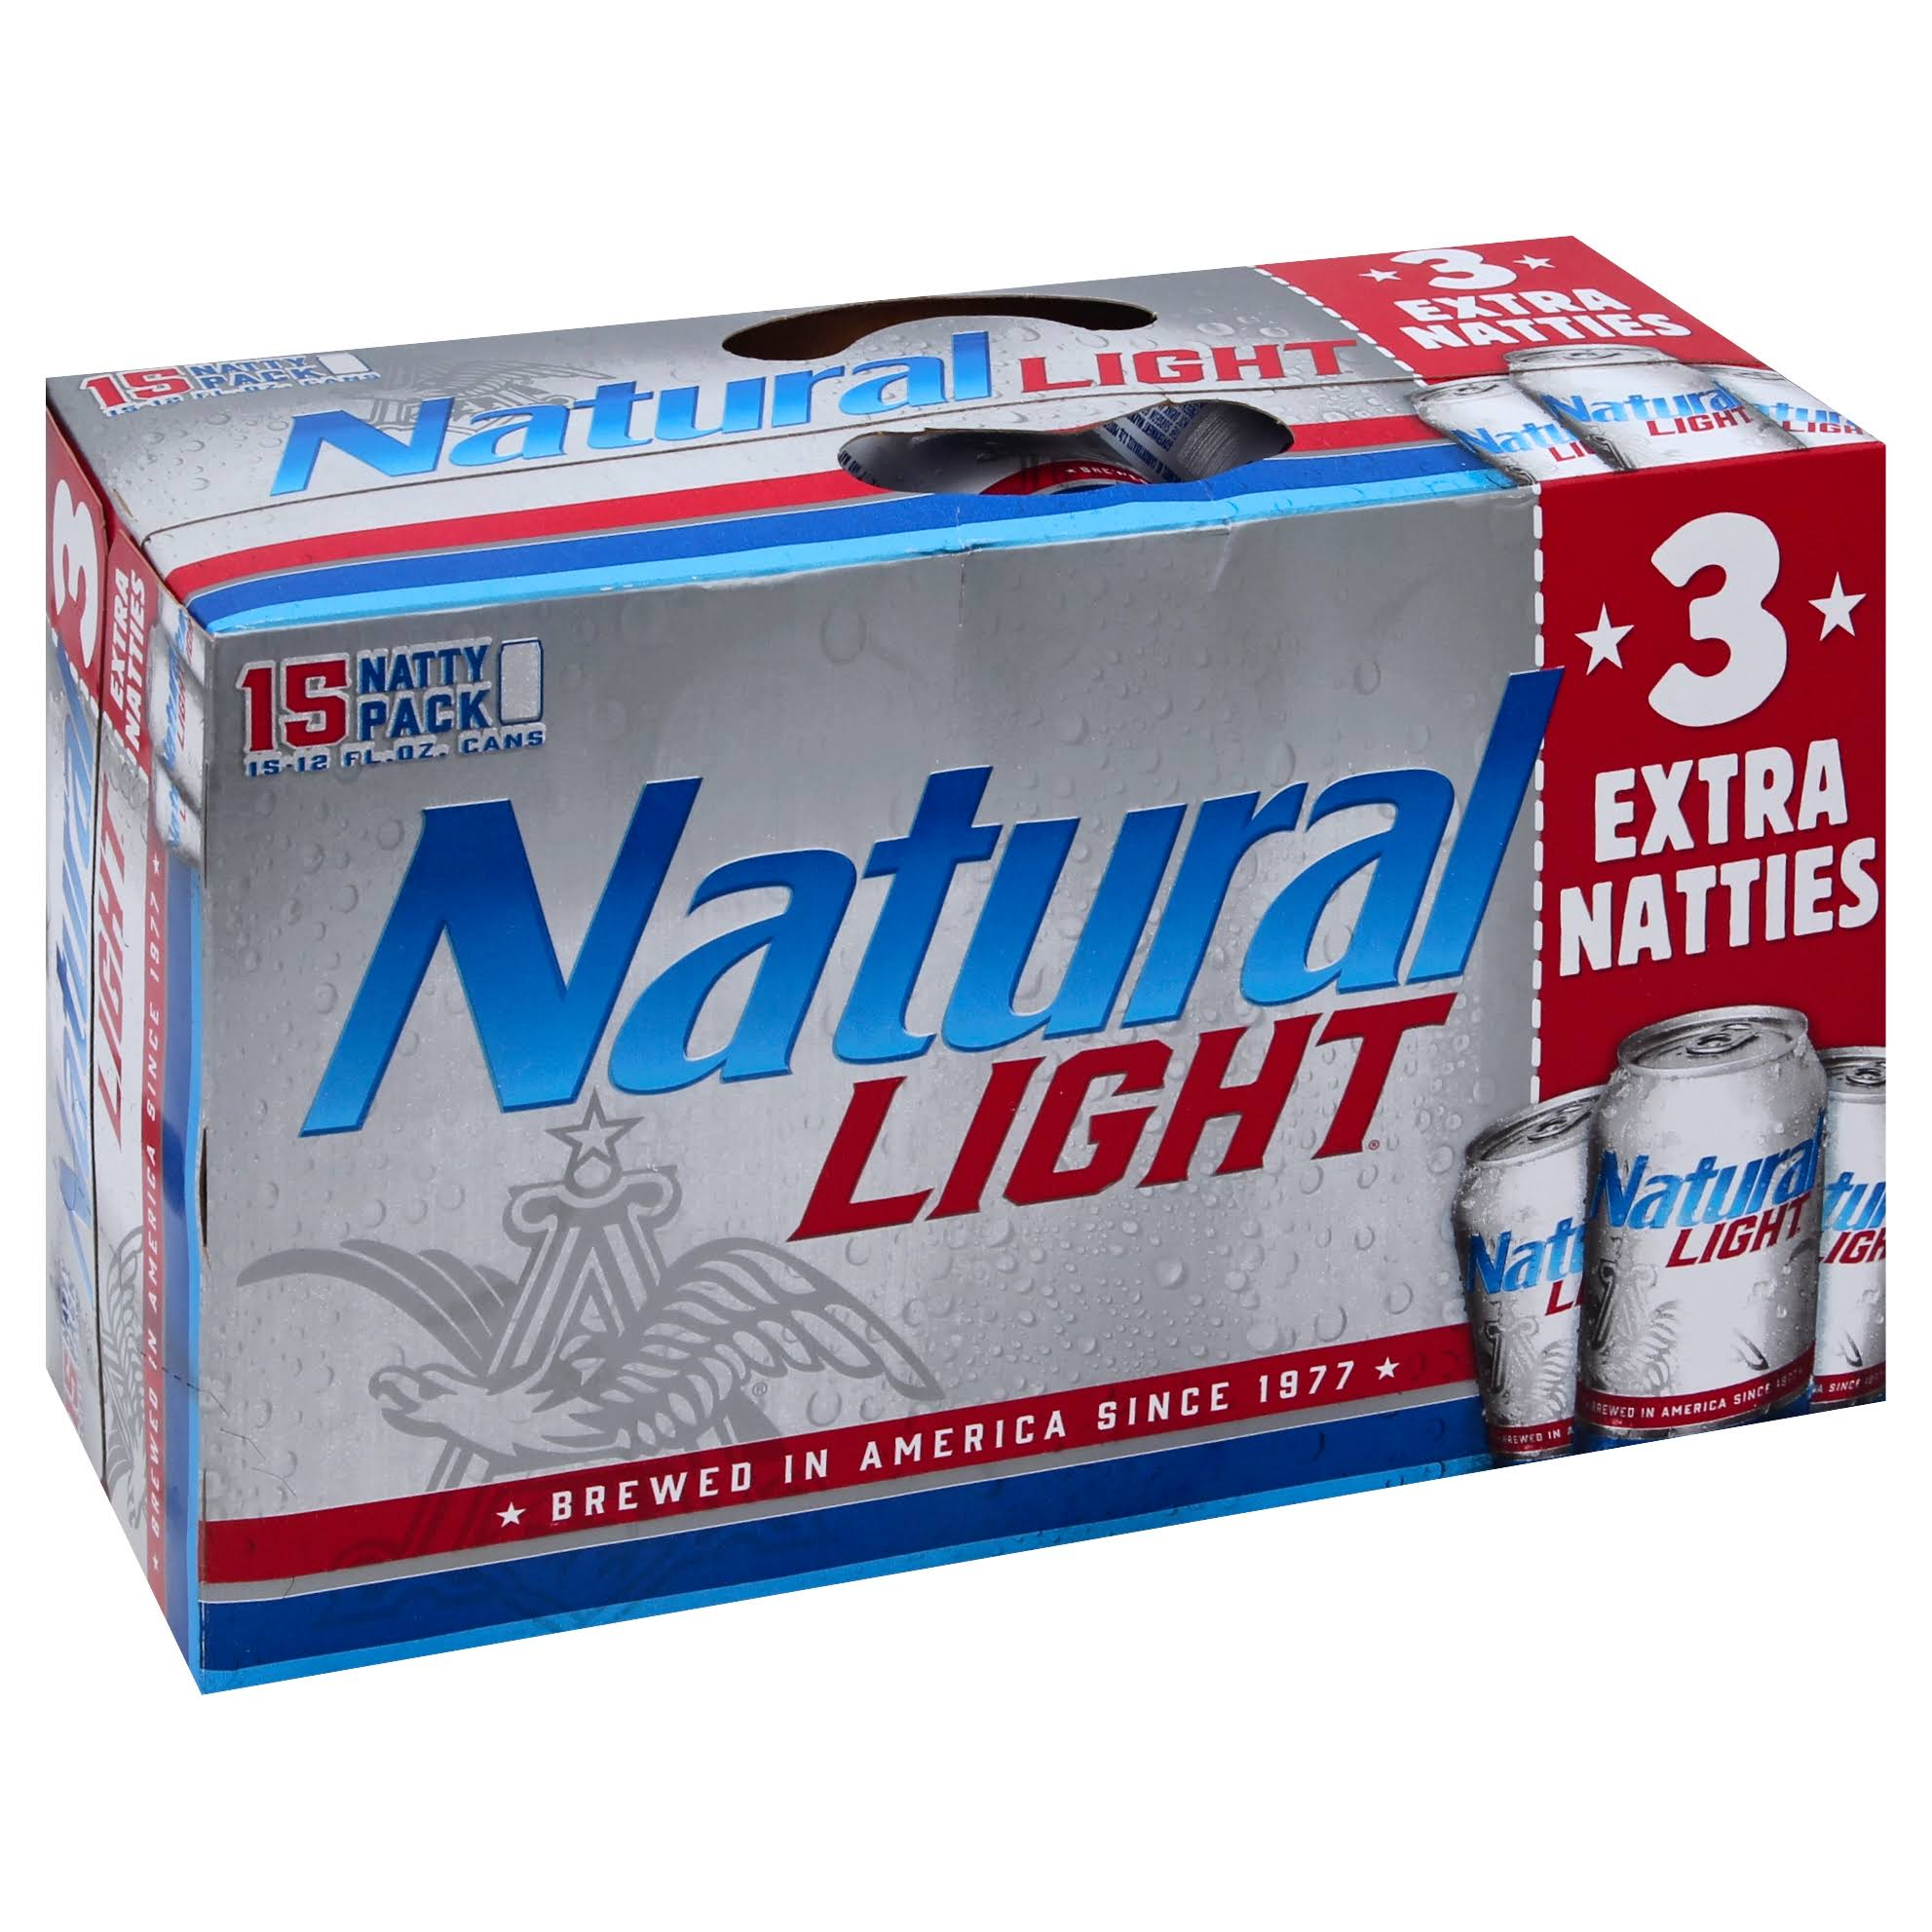 Natural Light Beer, Natty Pack - 15 pack, 12 fl oz cans